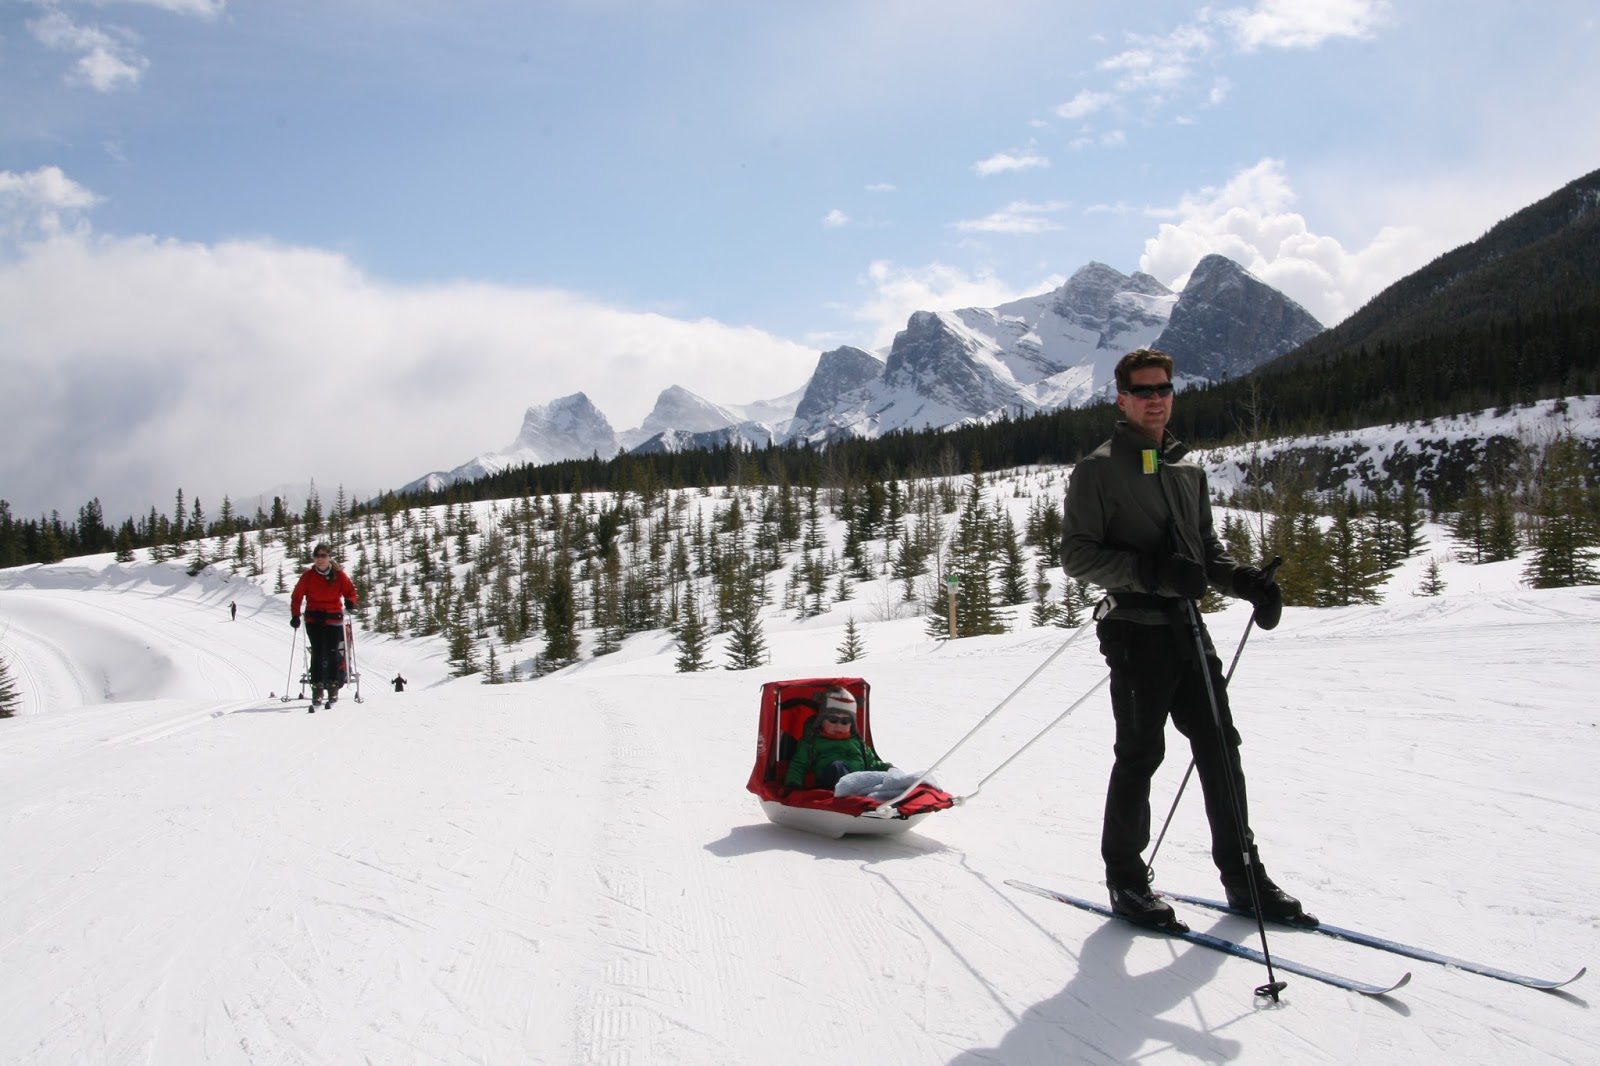 Family Adventures in the Canadian Rockies: Family Cross